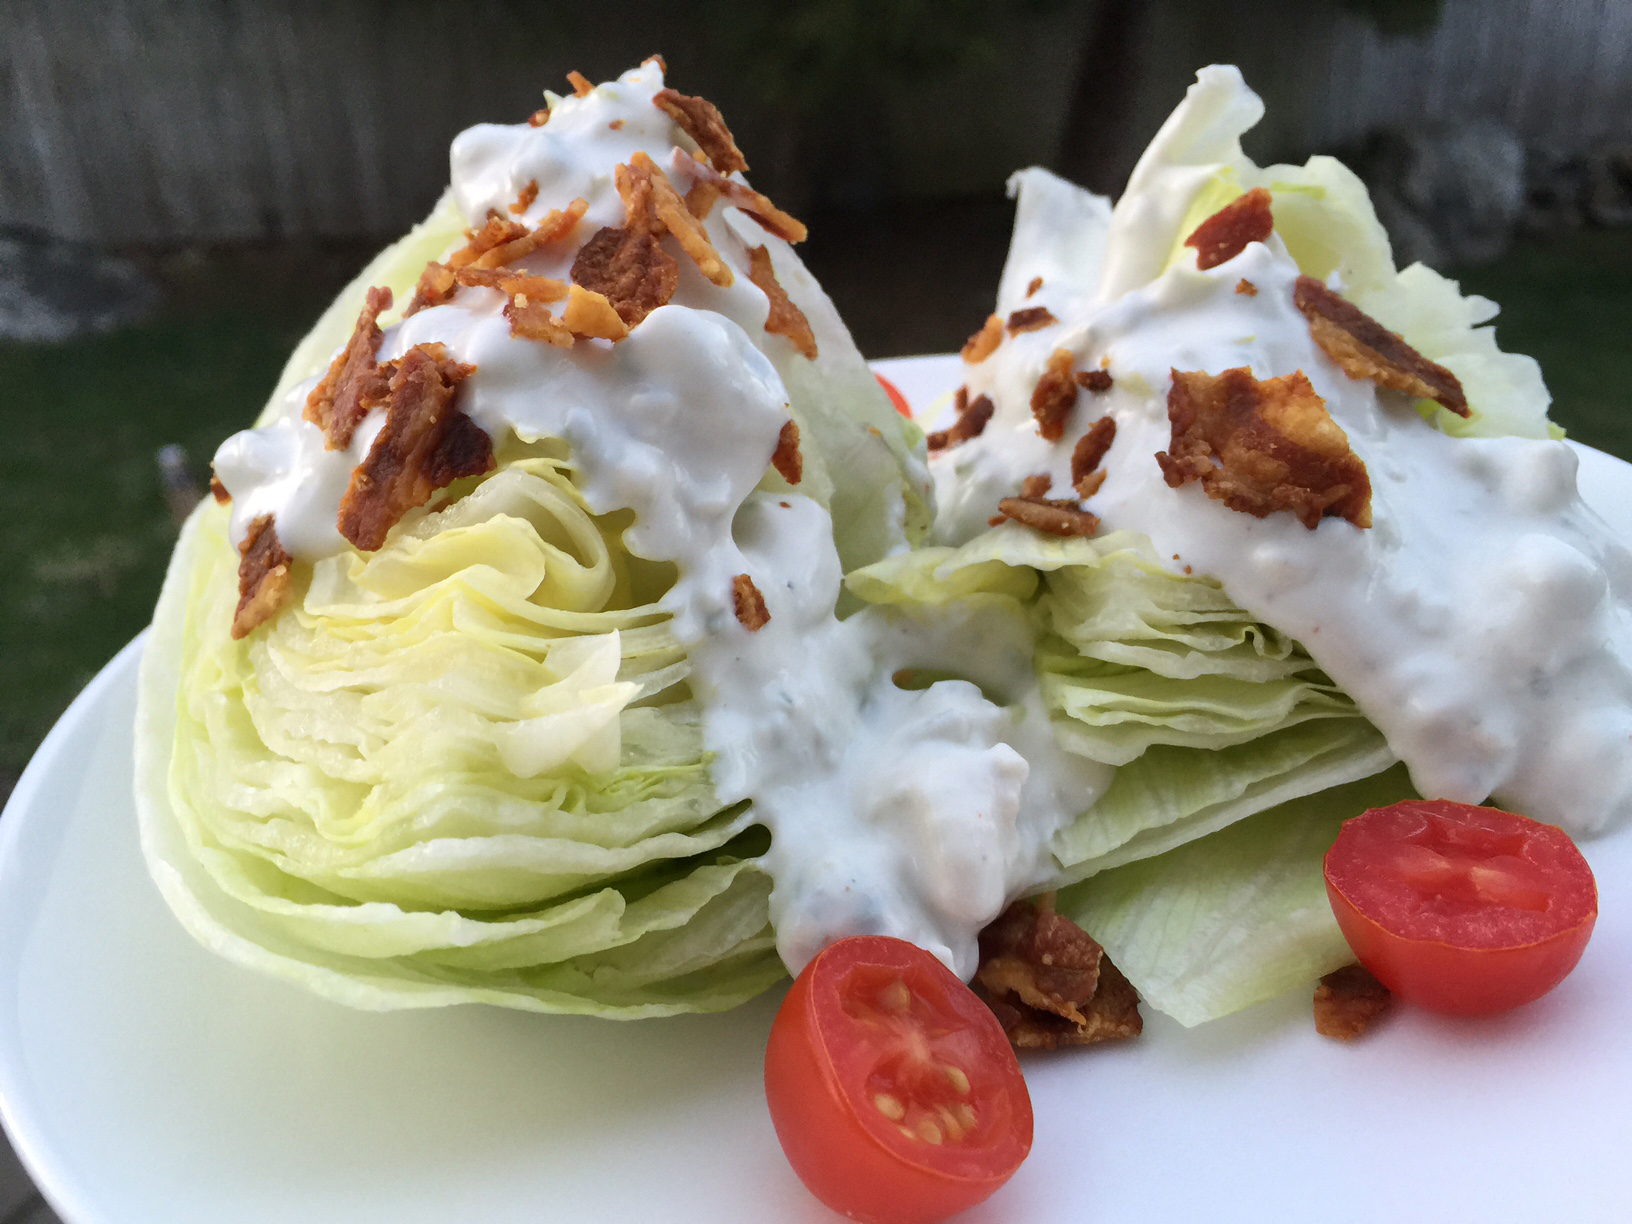 The best bleu cheese wedge salad